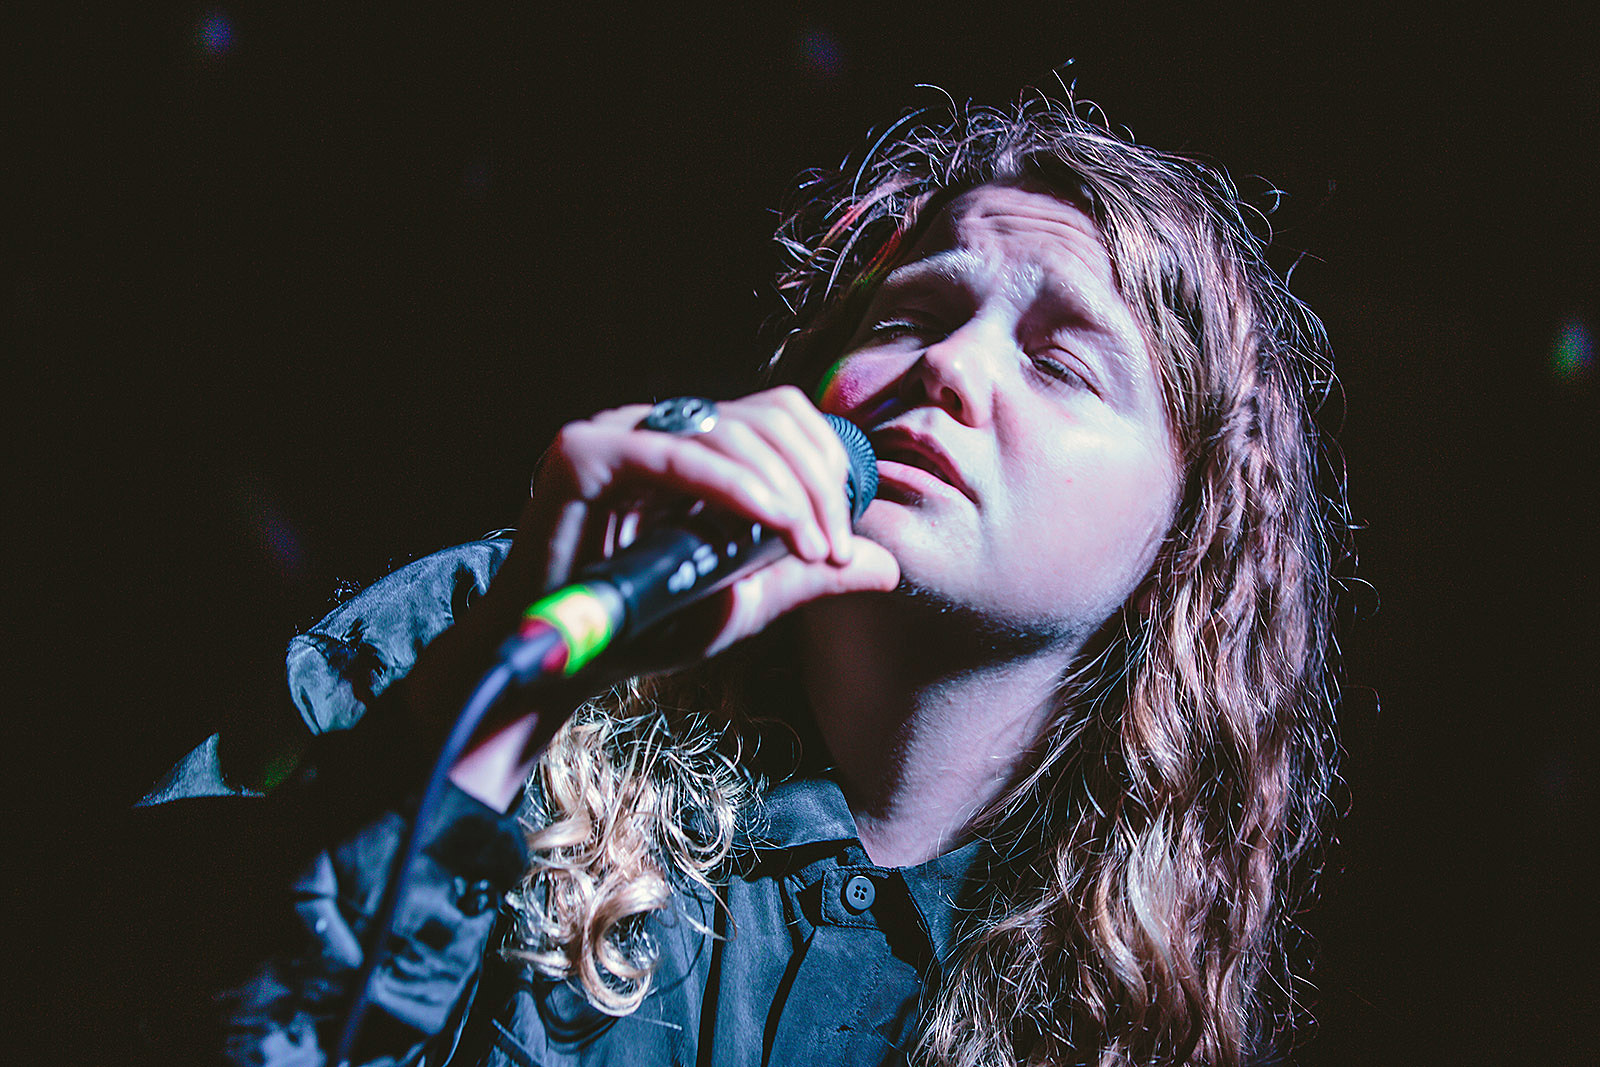 Kate Tempest at Berlin